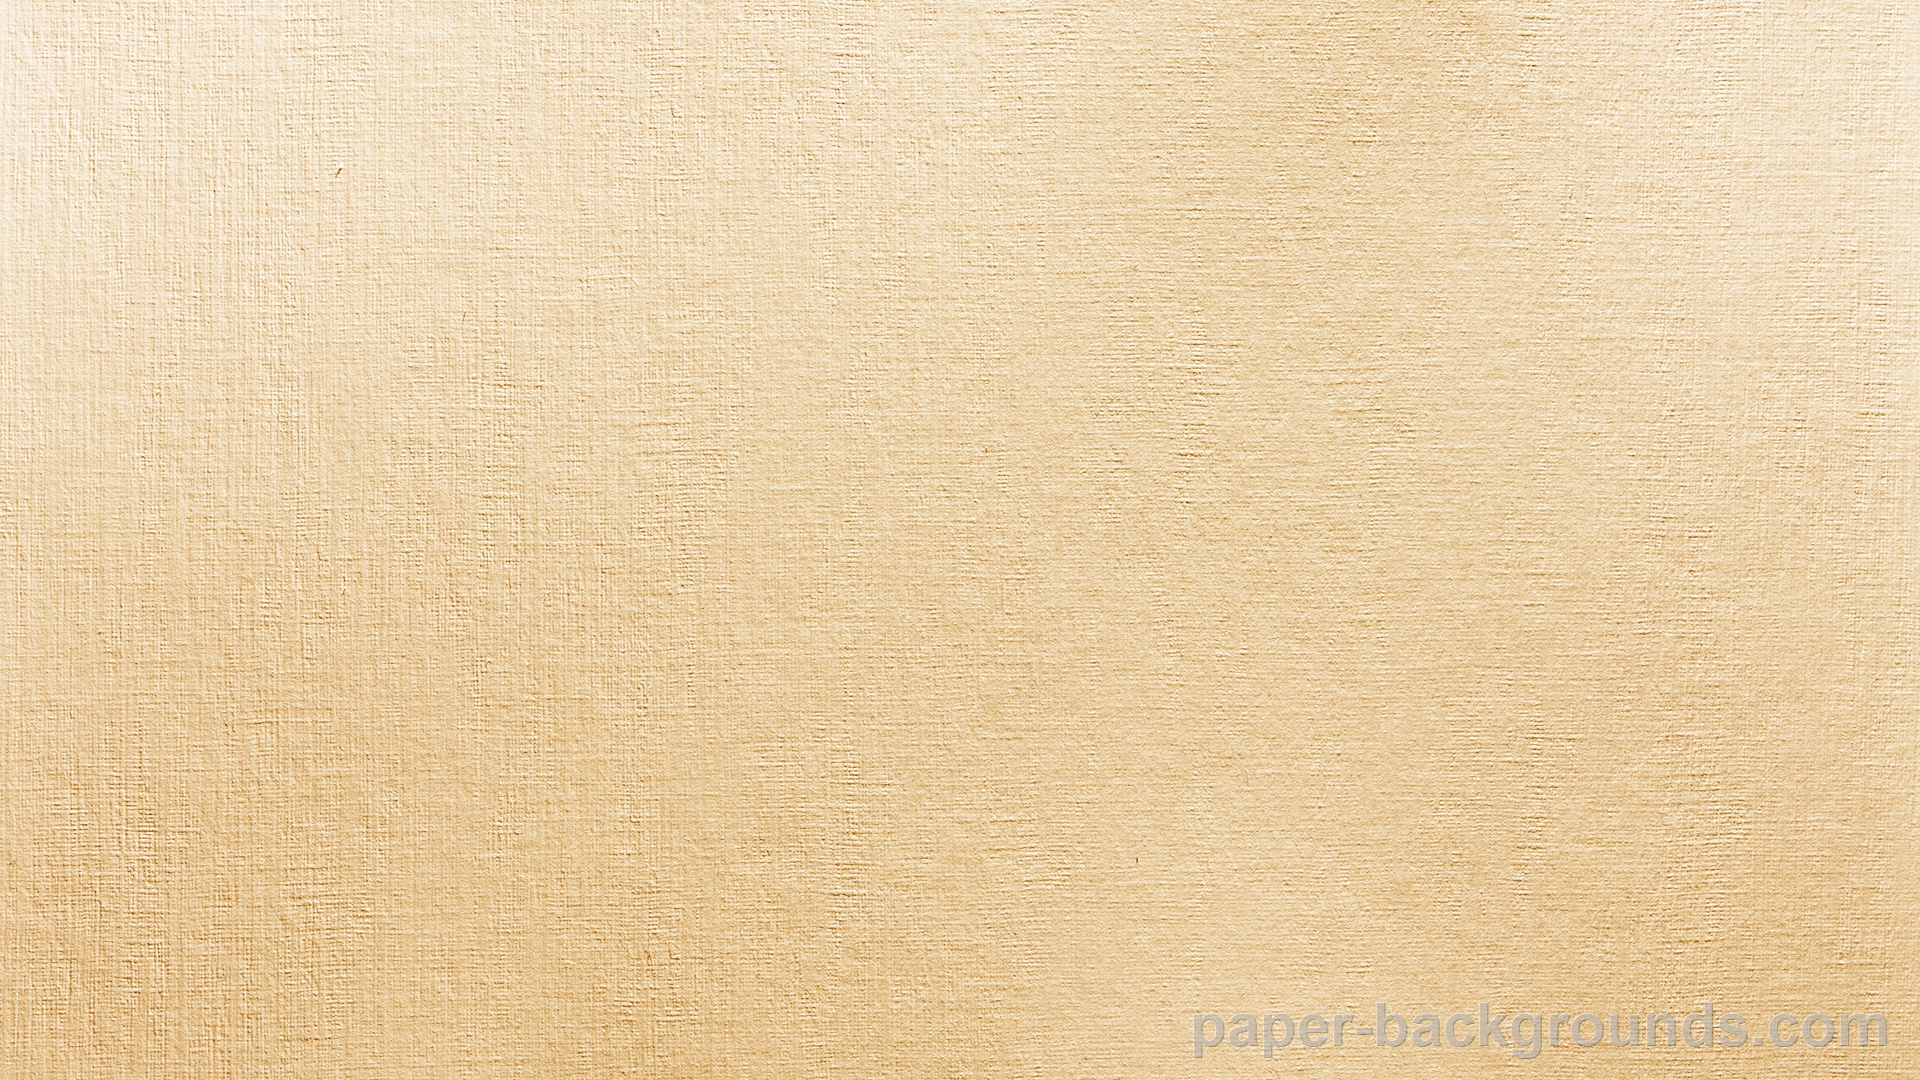 paper background texture Find and save ideas about paper background on pinterest | see more ideas about free paper texture, paper texture and free texture backgrounds.